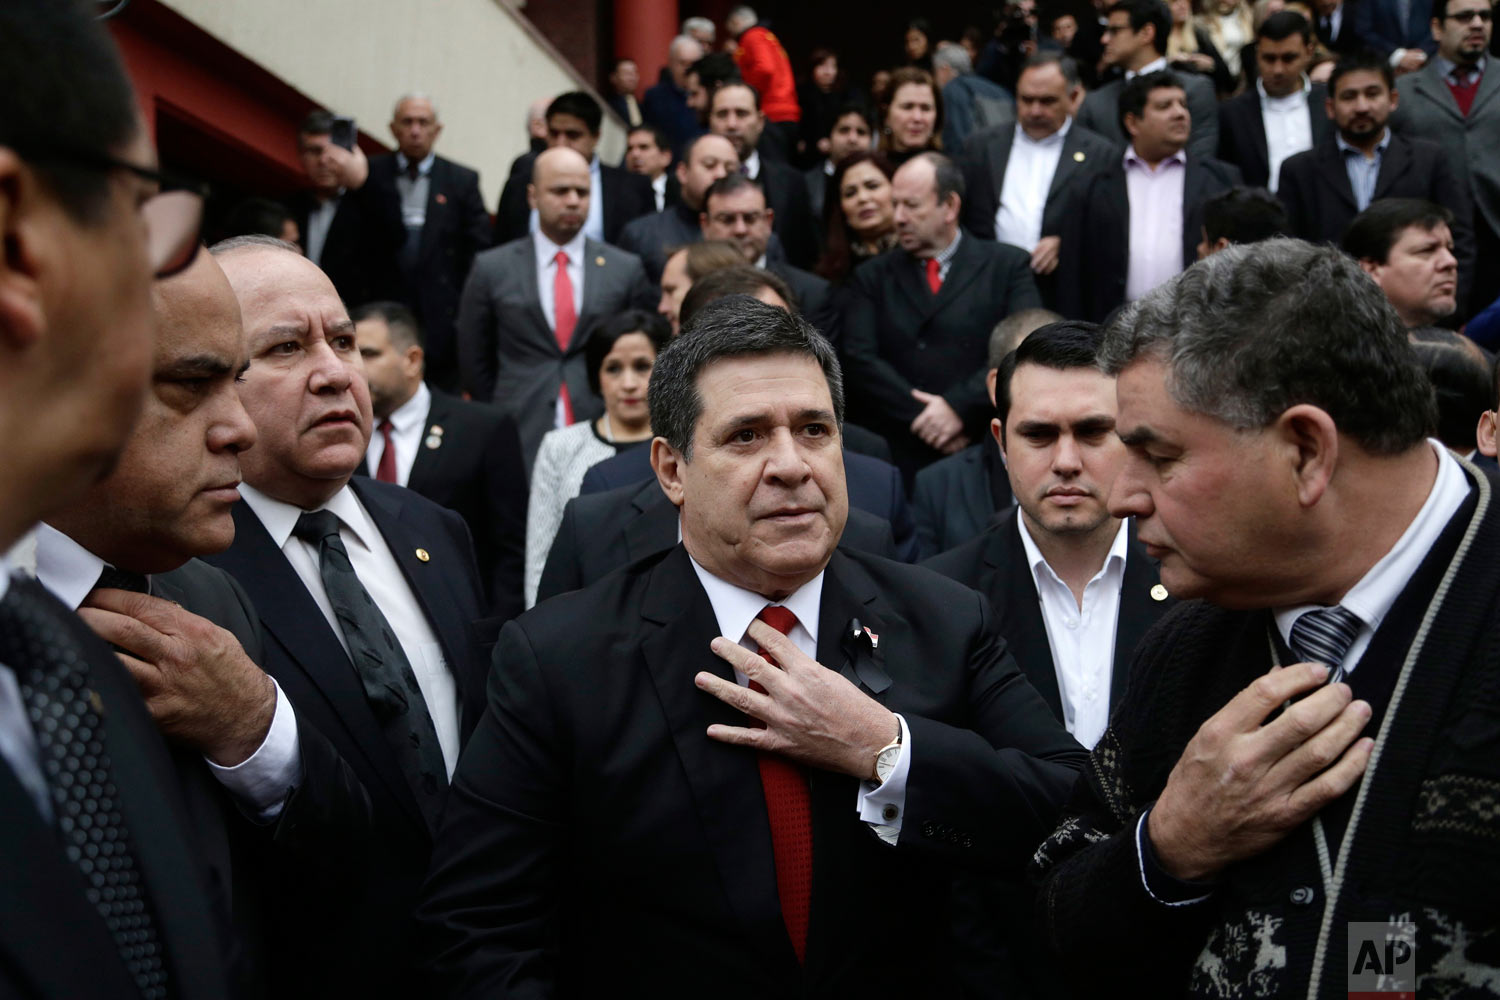 In this July 27, 2018 photo, Paraguay's President Horacio Cartes straightens his tie as he waits for the arrival of the coffin of his Agriculture Minister Luis Gneiting for a memorial service in Asuncion, Paraguay. The minister and three other people died when the twin-engine plane they were traveling in went down shortly after taking off at night. (AP Photo/Jorge Saenz)